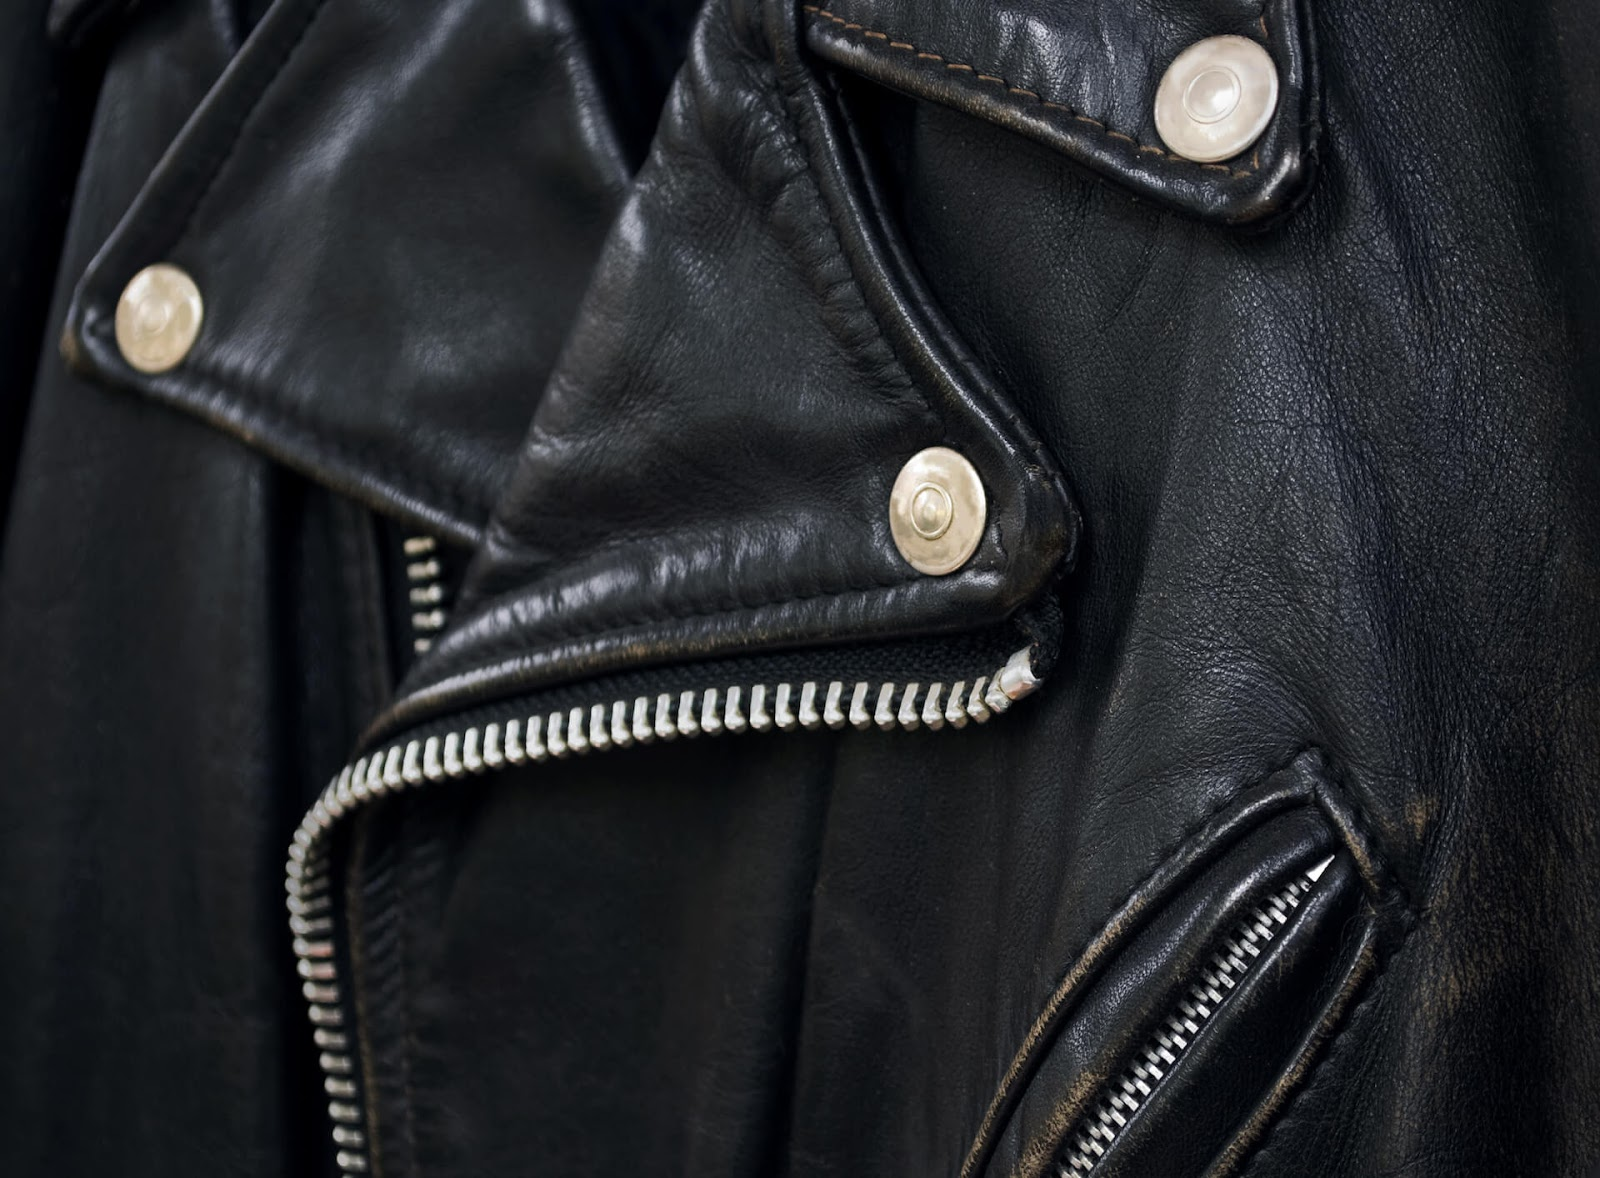 Close up of a leather jacket